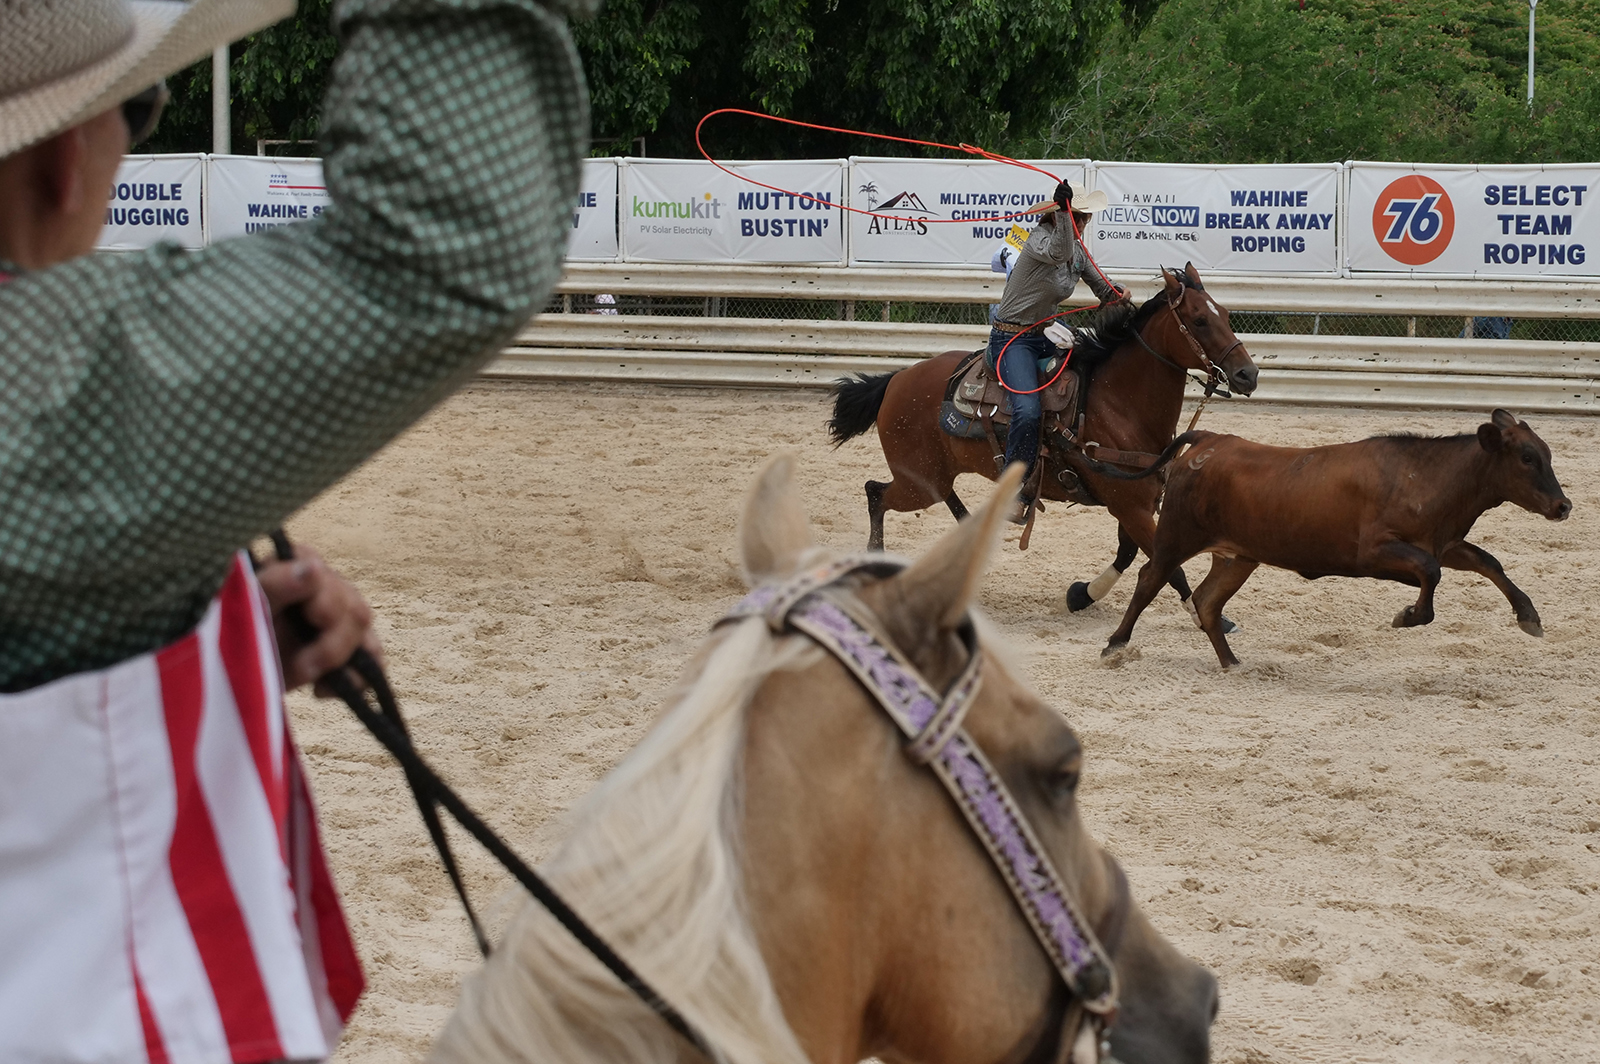 <p>A competitor in the wahine break-away roping event prepares to lasso a calf. A small string attached to the rope breaks once a calf is caught and releases a white flag signaling the end of the run.</p>